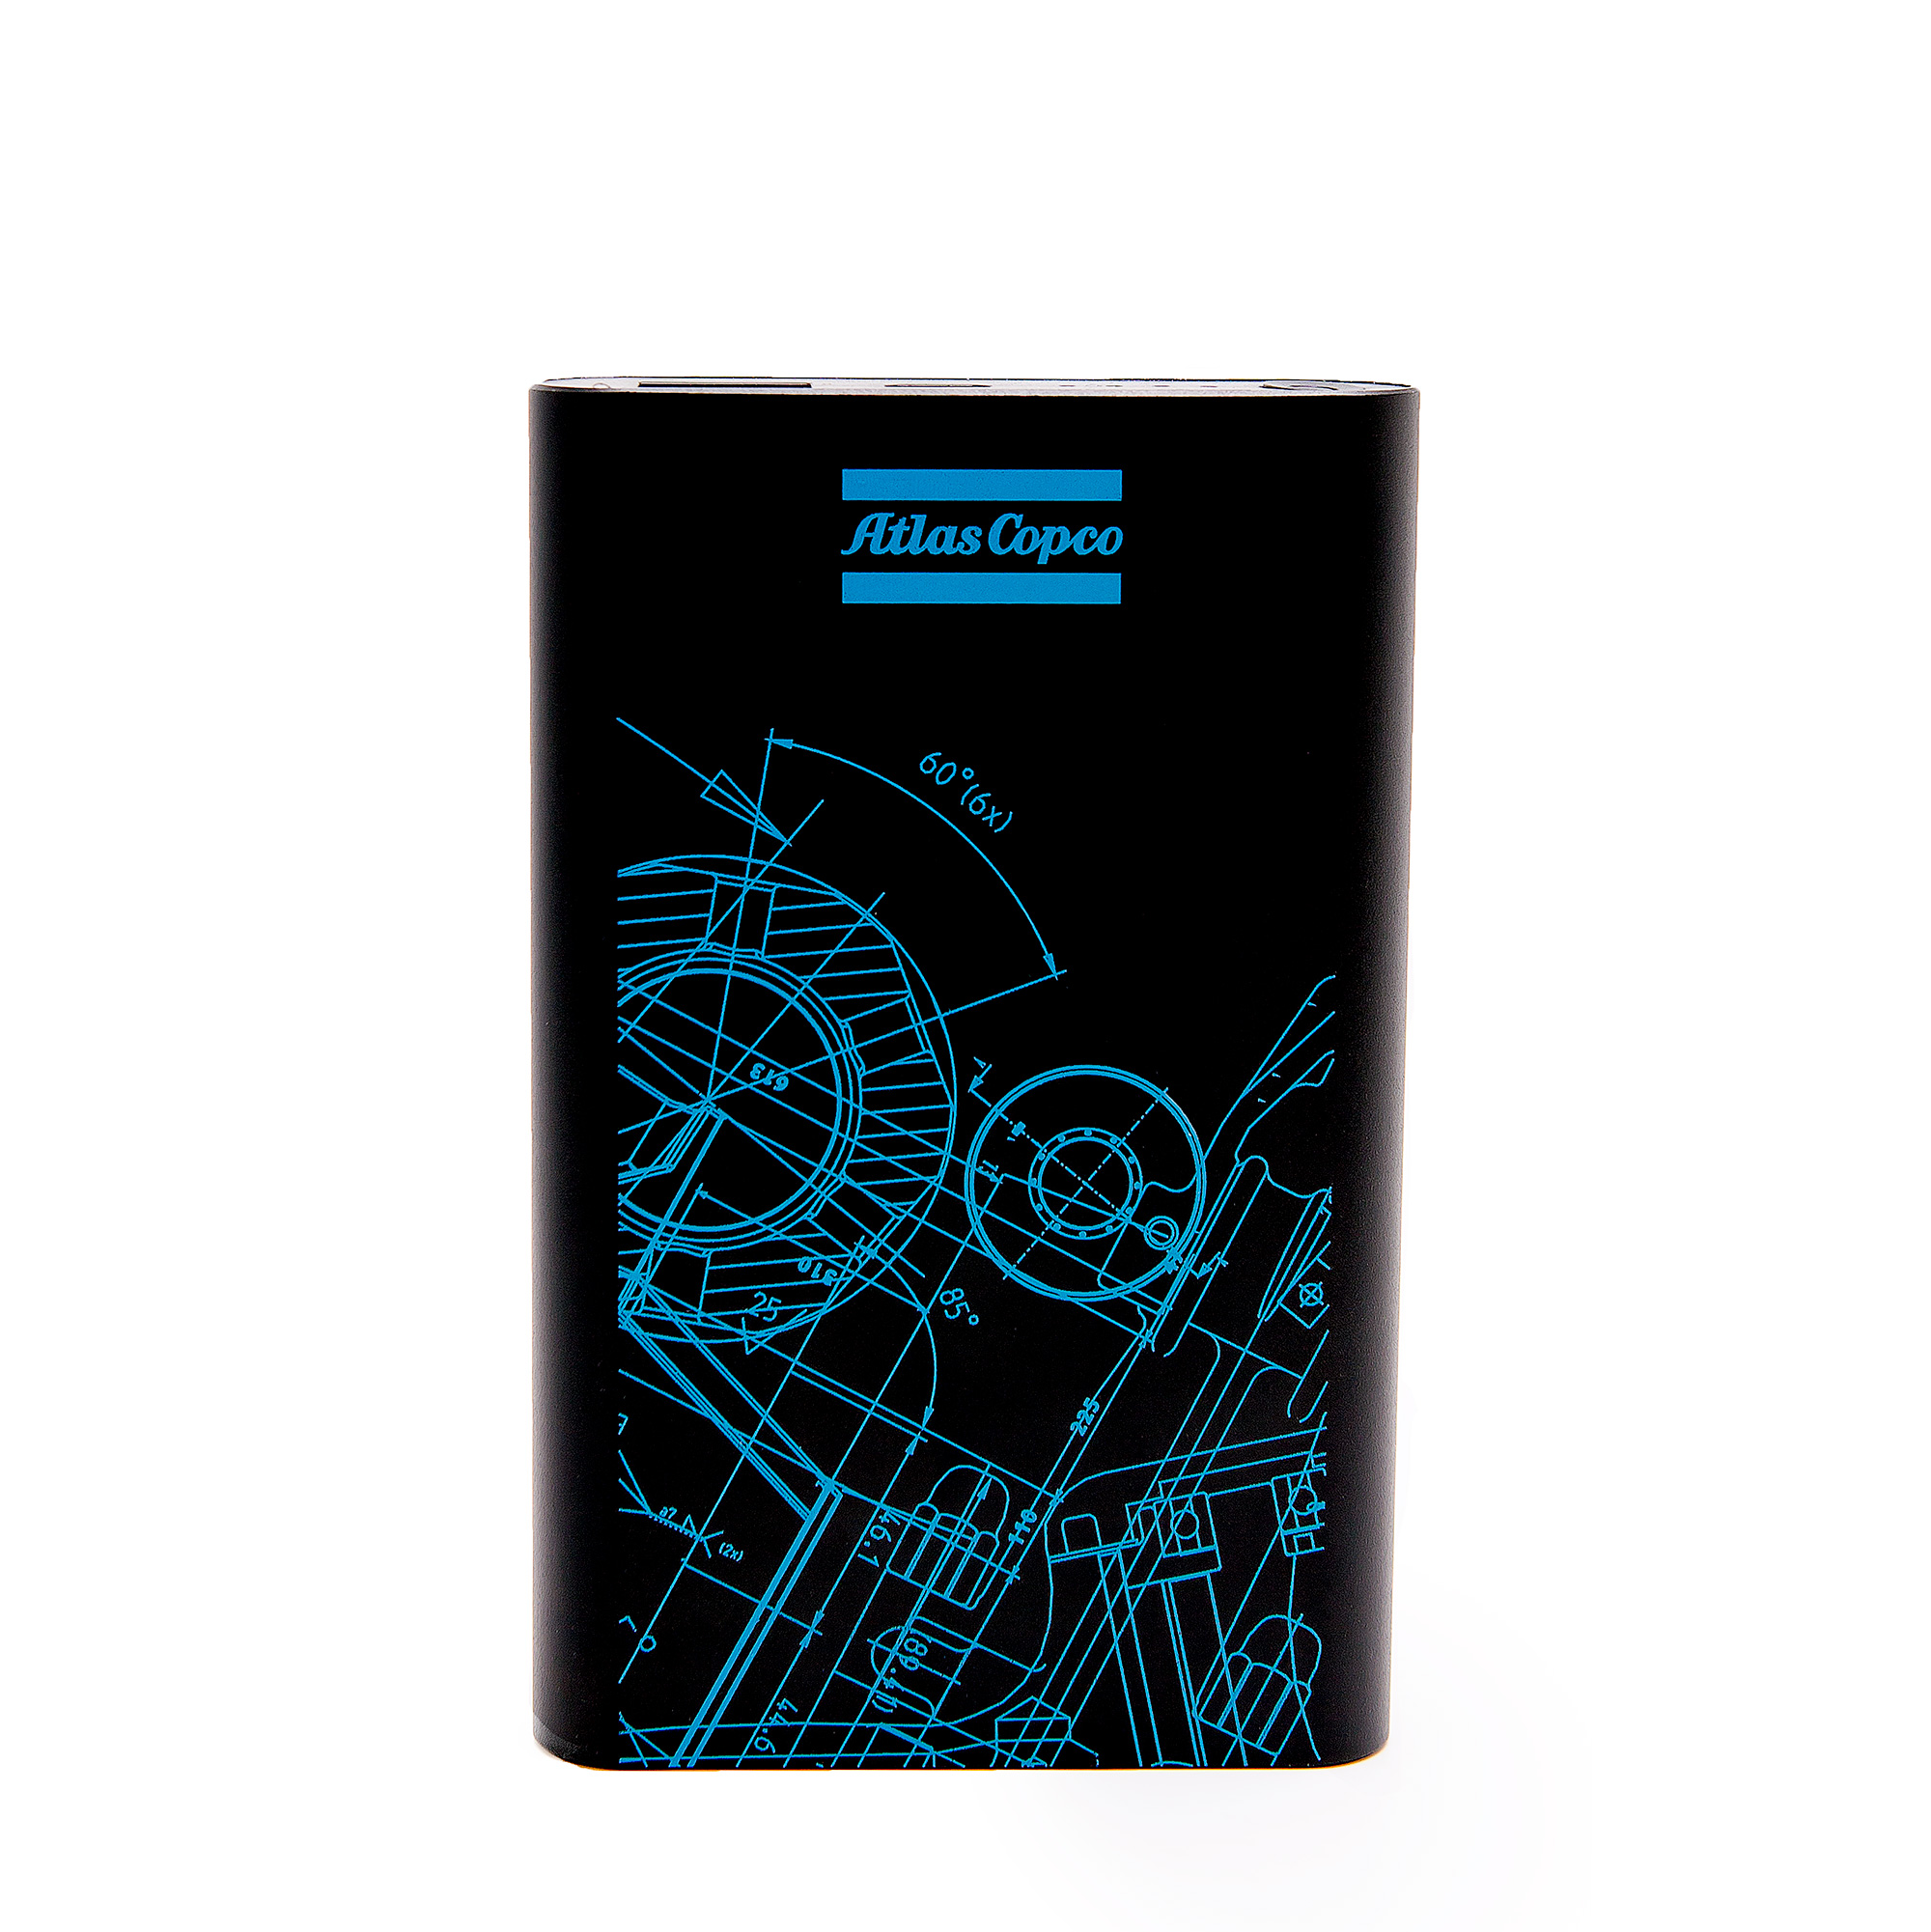 <p>A must have multi charger for your smartphone or other device with USB mini charging connector. Charge the power power bank via the USB charging connector before you travel and you'll always have extra power when you need it. The Atlas Copco BluePrint graphic pattern was created by merging sections of engineering blueprints from all business areas.</p>